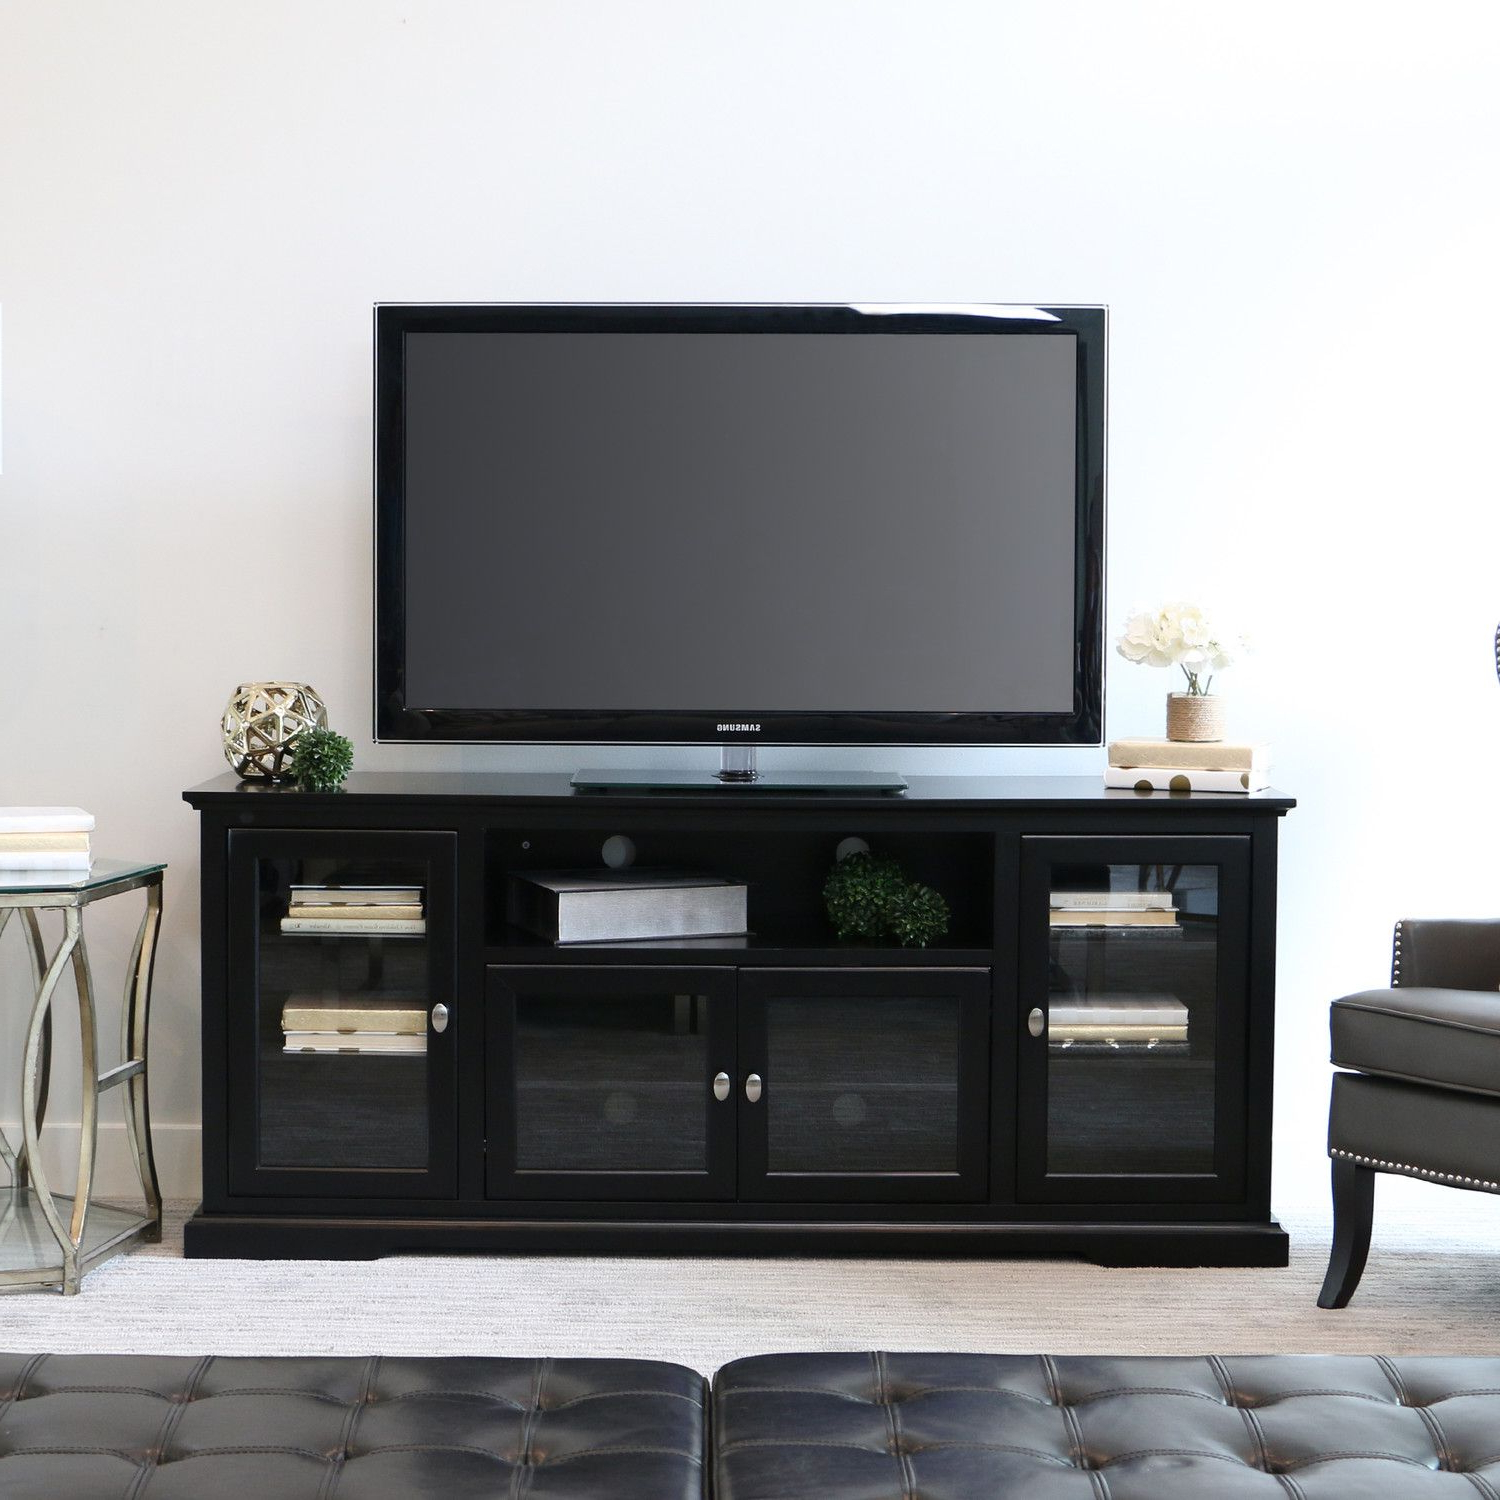 Highboy Tv Stand Throughout Recent Hokku Tv Stands (View 6 of 20)